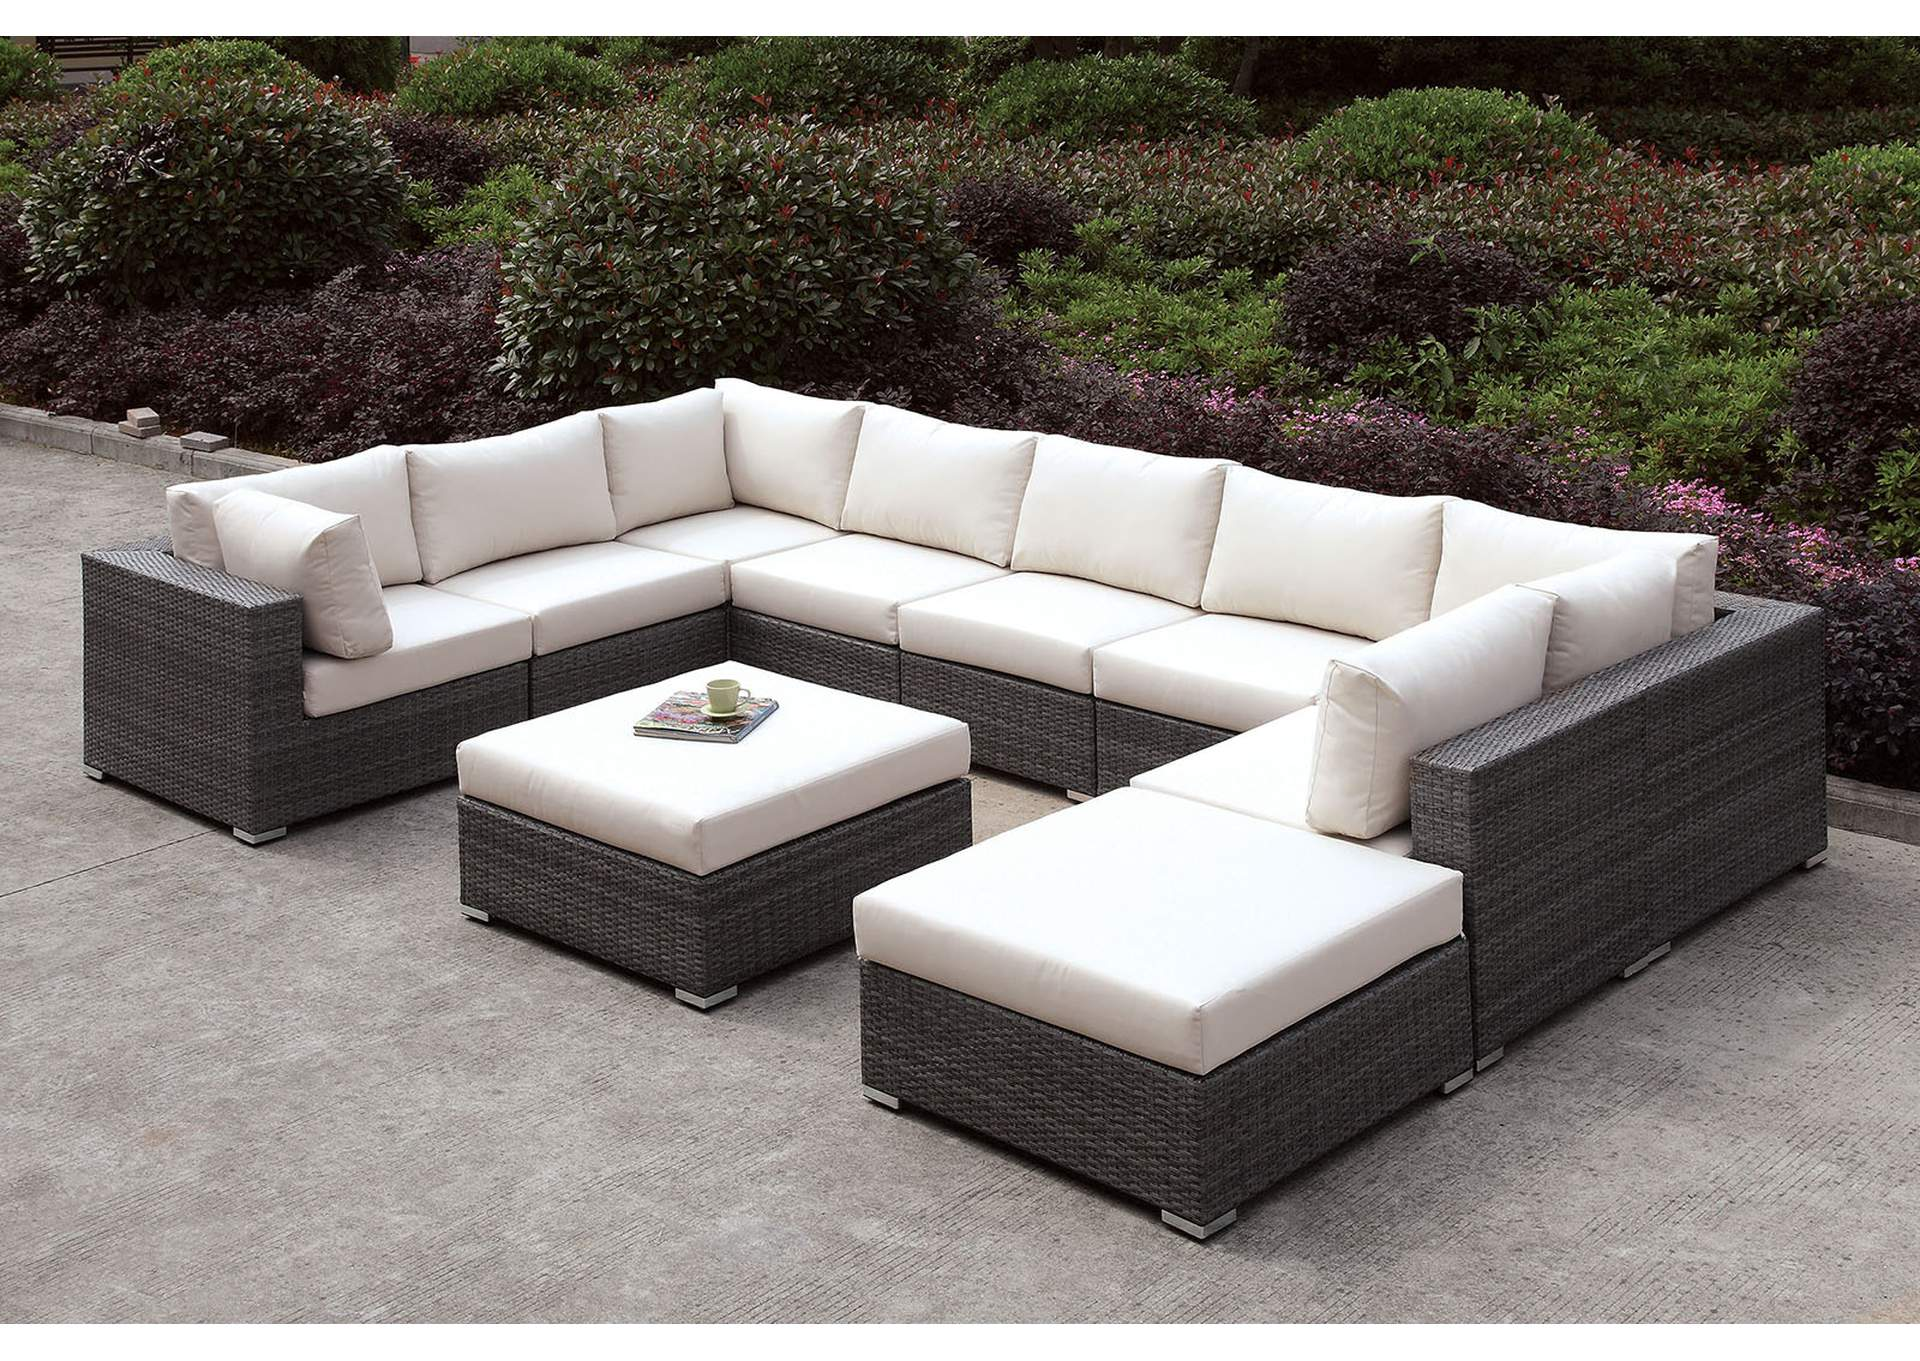 Pleasant Harlem Furniture Somani Light Gray Ivory Wicker U Sectional Gmtry Best Dining Table And Chair Ideas Images Gmtryco